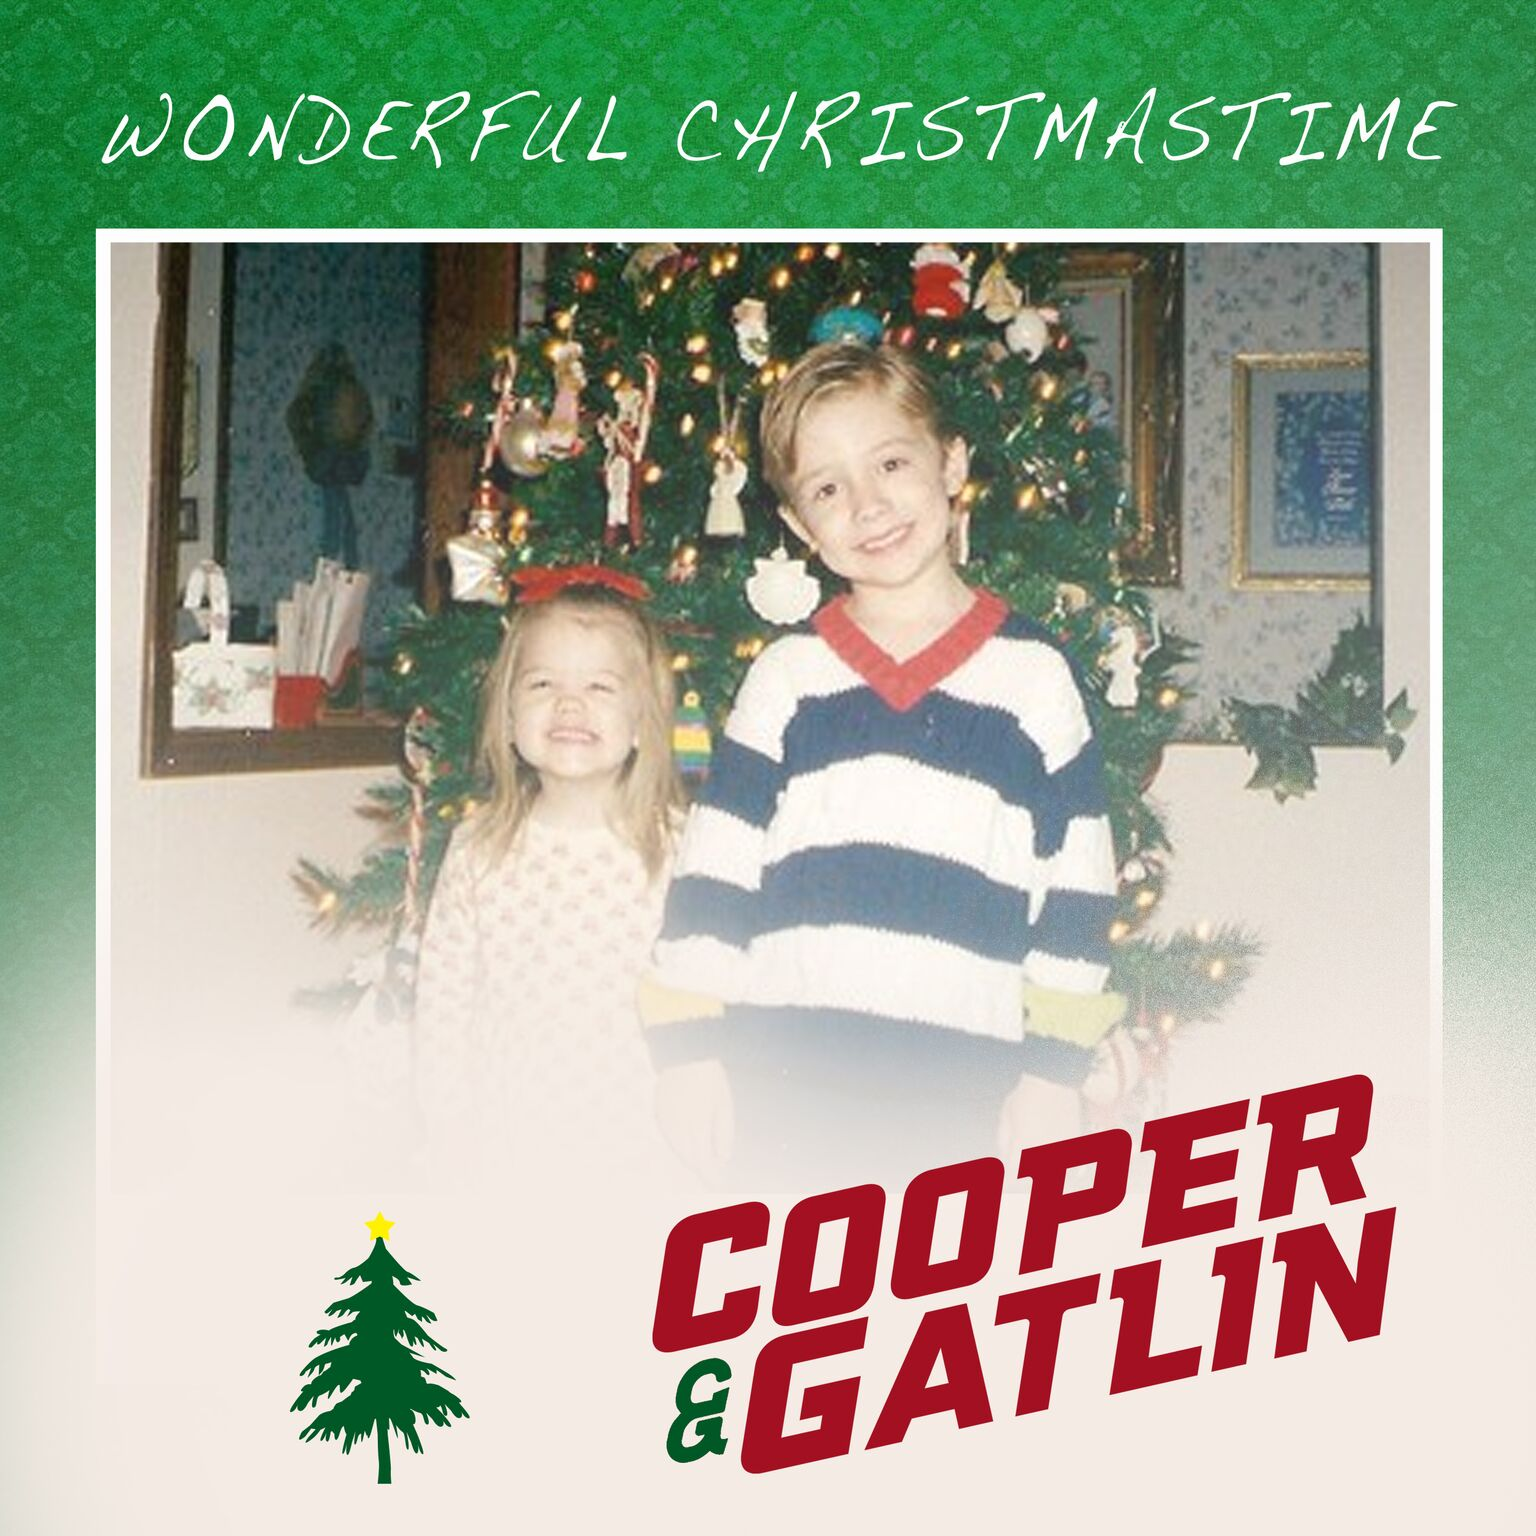 cooper-gatlin-wonderful-christmastime.jpg